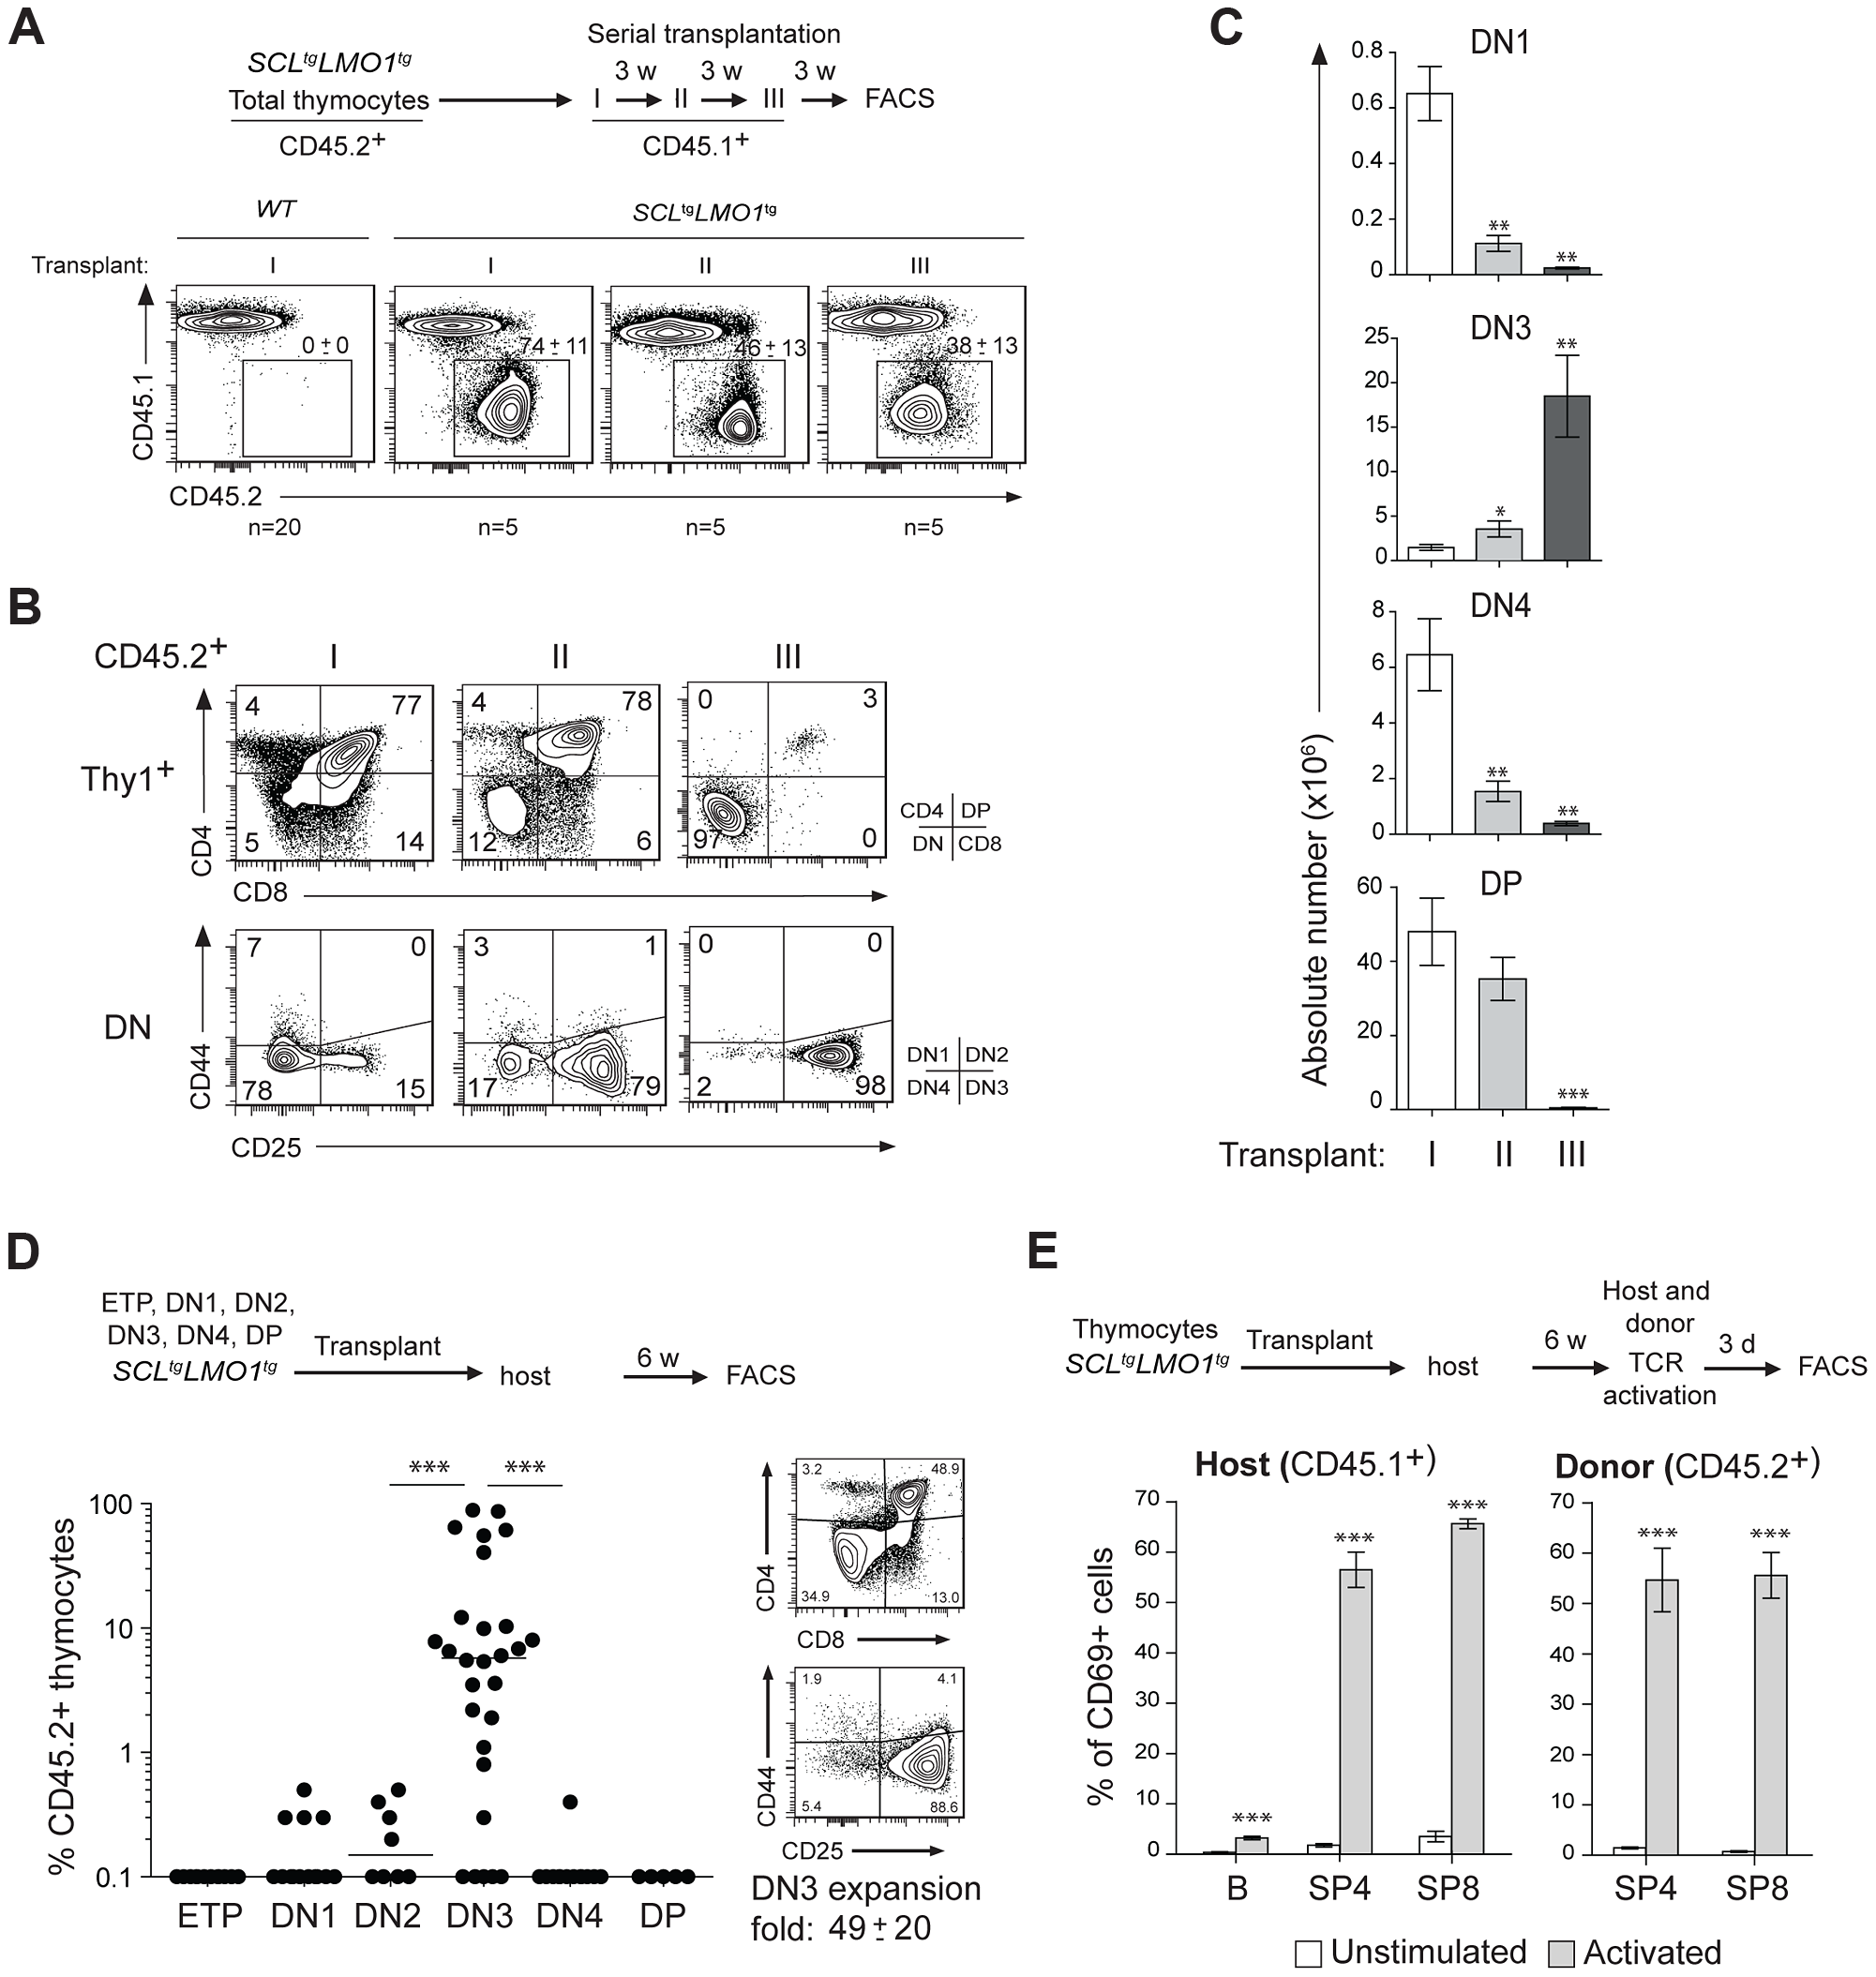 The <i>SCL</i> and <i>LMO1</i> oncogenes confer an aberrant self-renewal potential to DN3 pre-leukemic thymocytes.